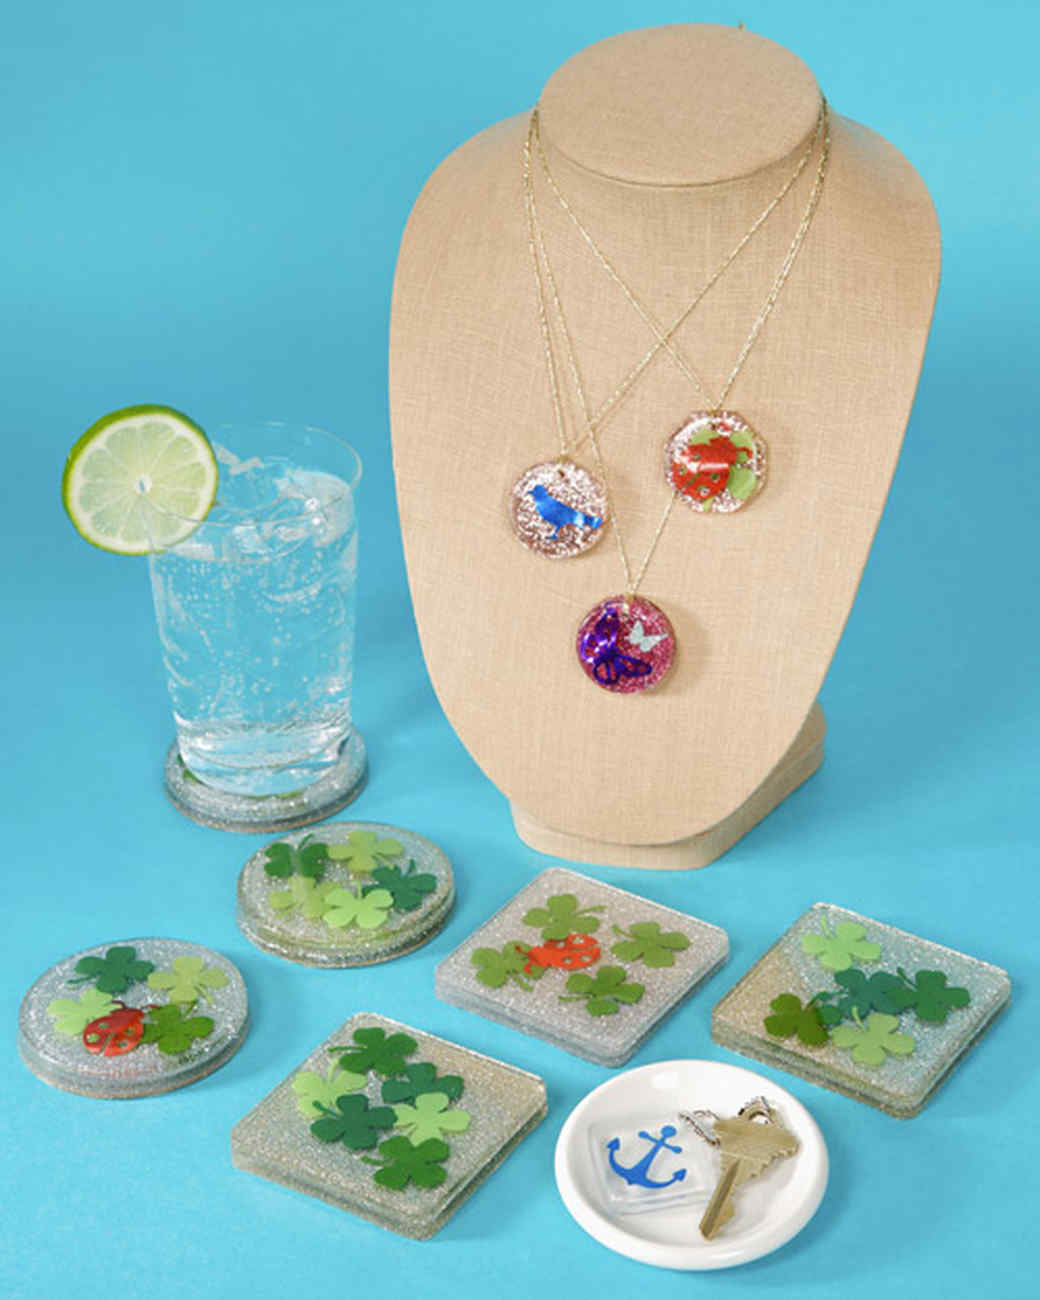 Resin-Casted Clover Coasters